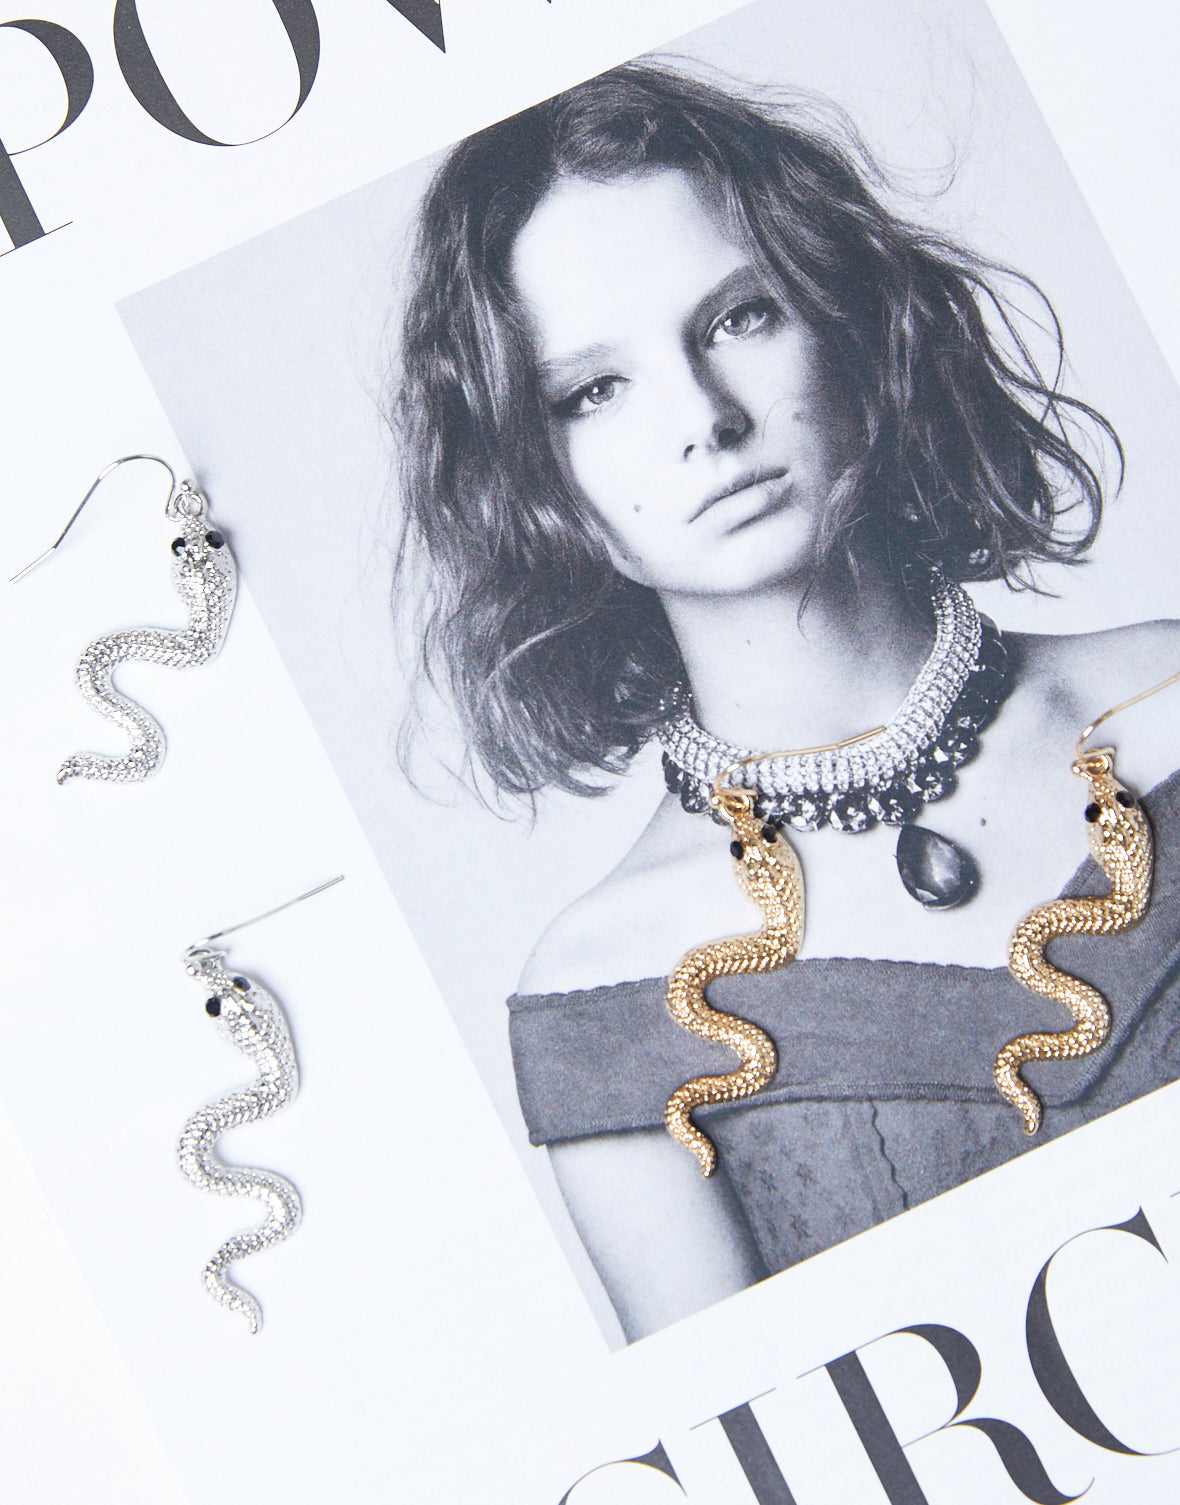 Wavy Snake Earrings